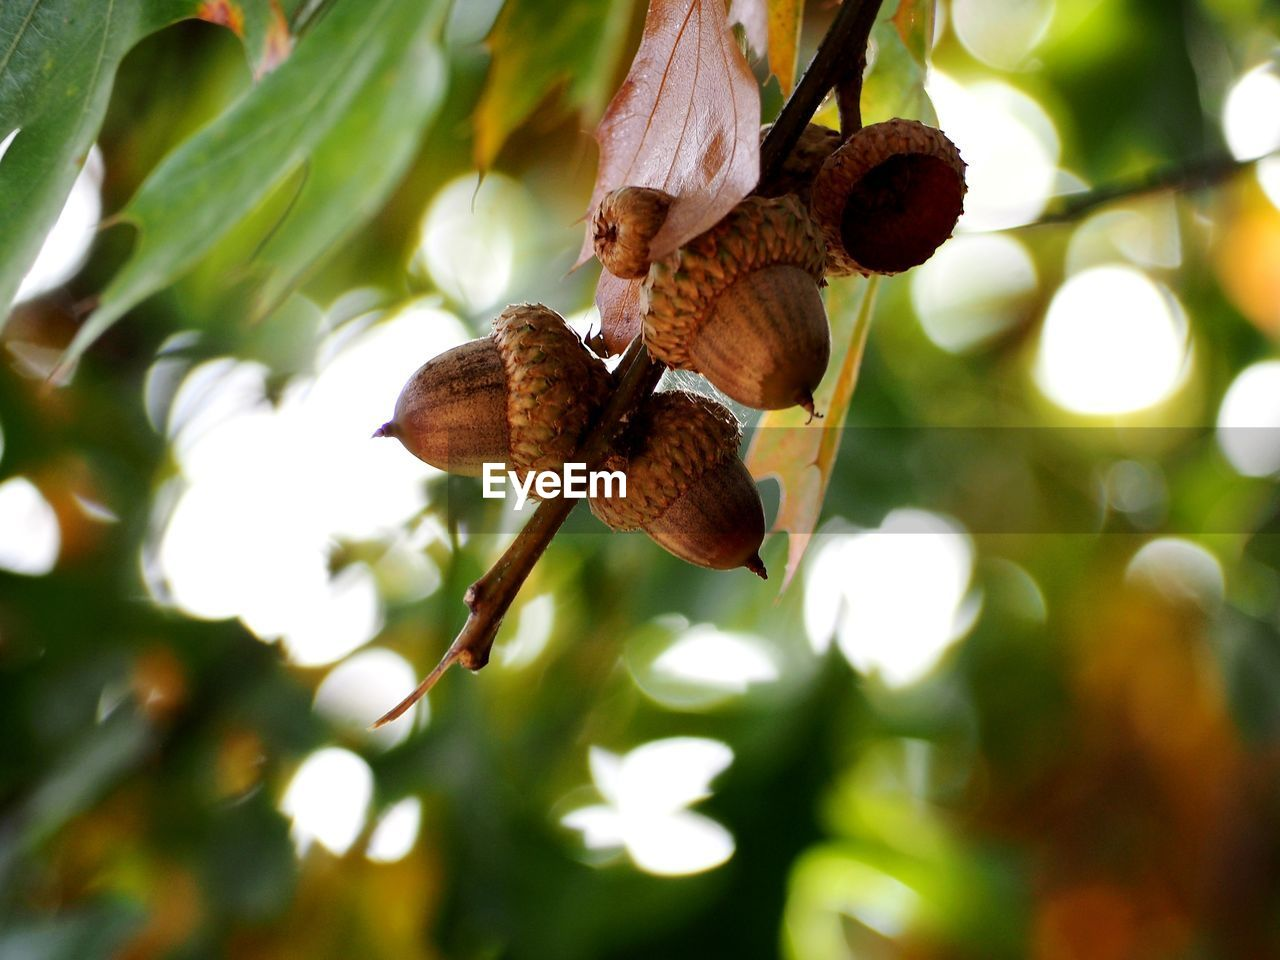 plant, tree, focus on foreground, nature, no people, close-up, day, beauty in nature, leaf, growth, plant part, hanging, outdoors, sunlight, animal wildlife, animal, selective focus, animals in the wild, low angle view, branch, butterfly - insect